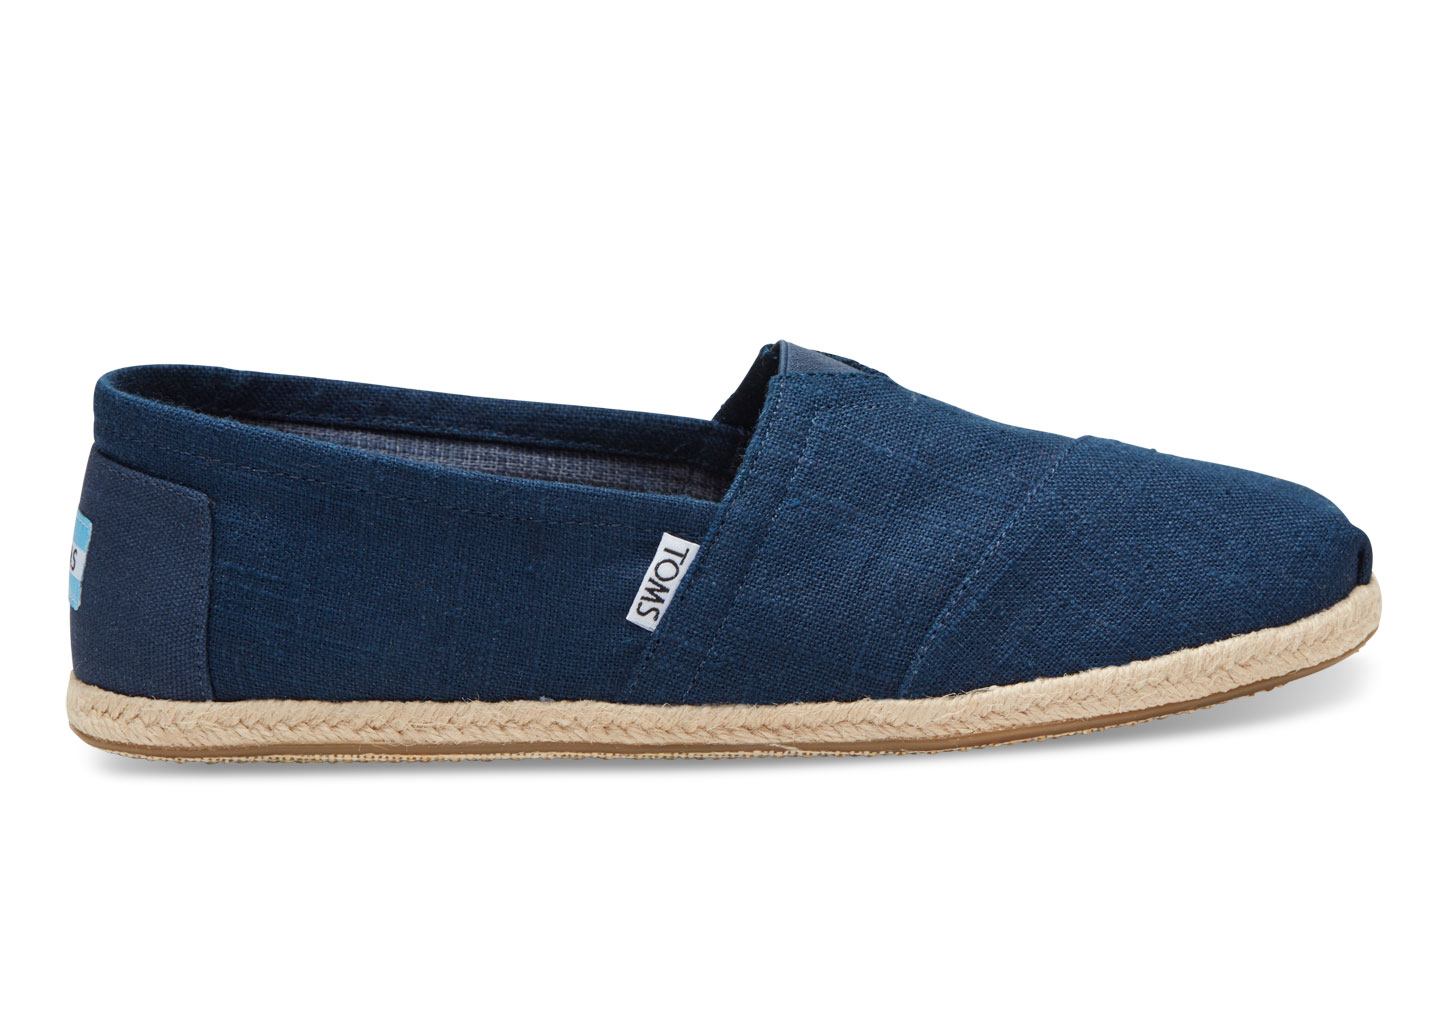 8ce7edf1252 TOMS Mens Navy Linen Rope Sole 8553